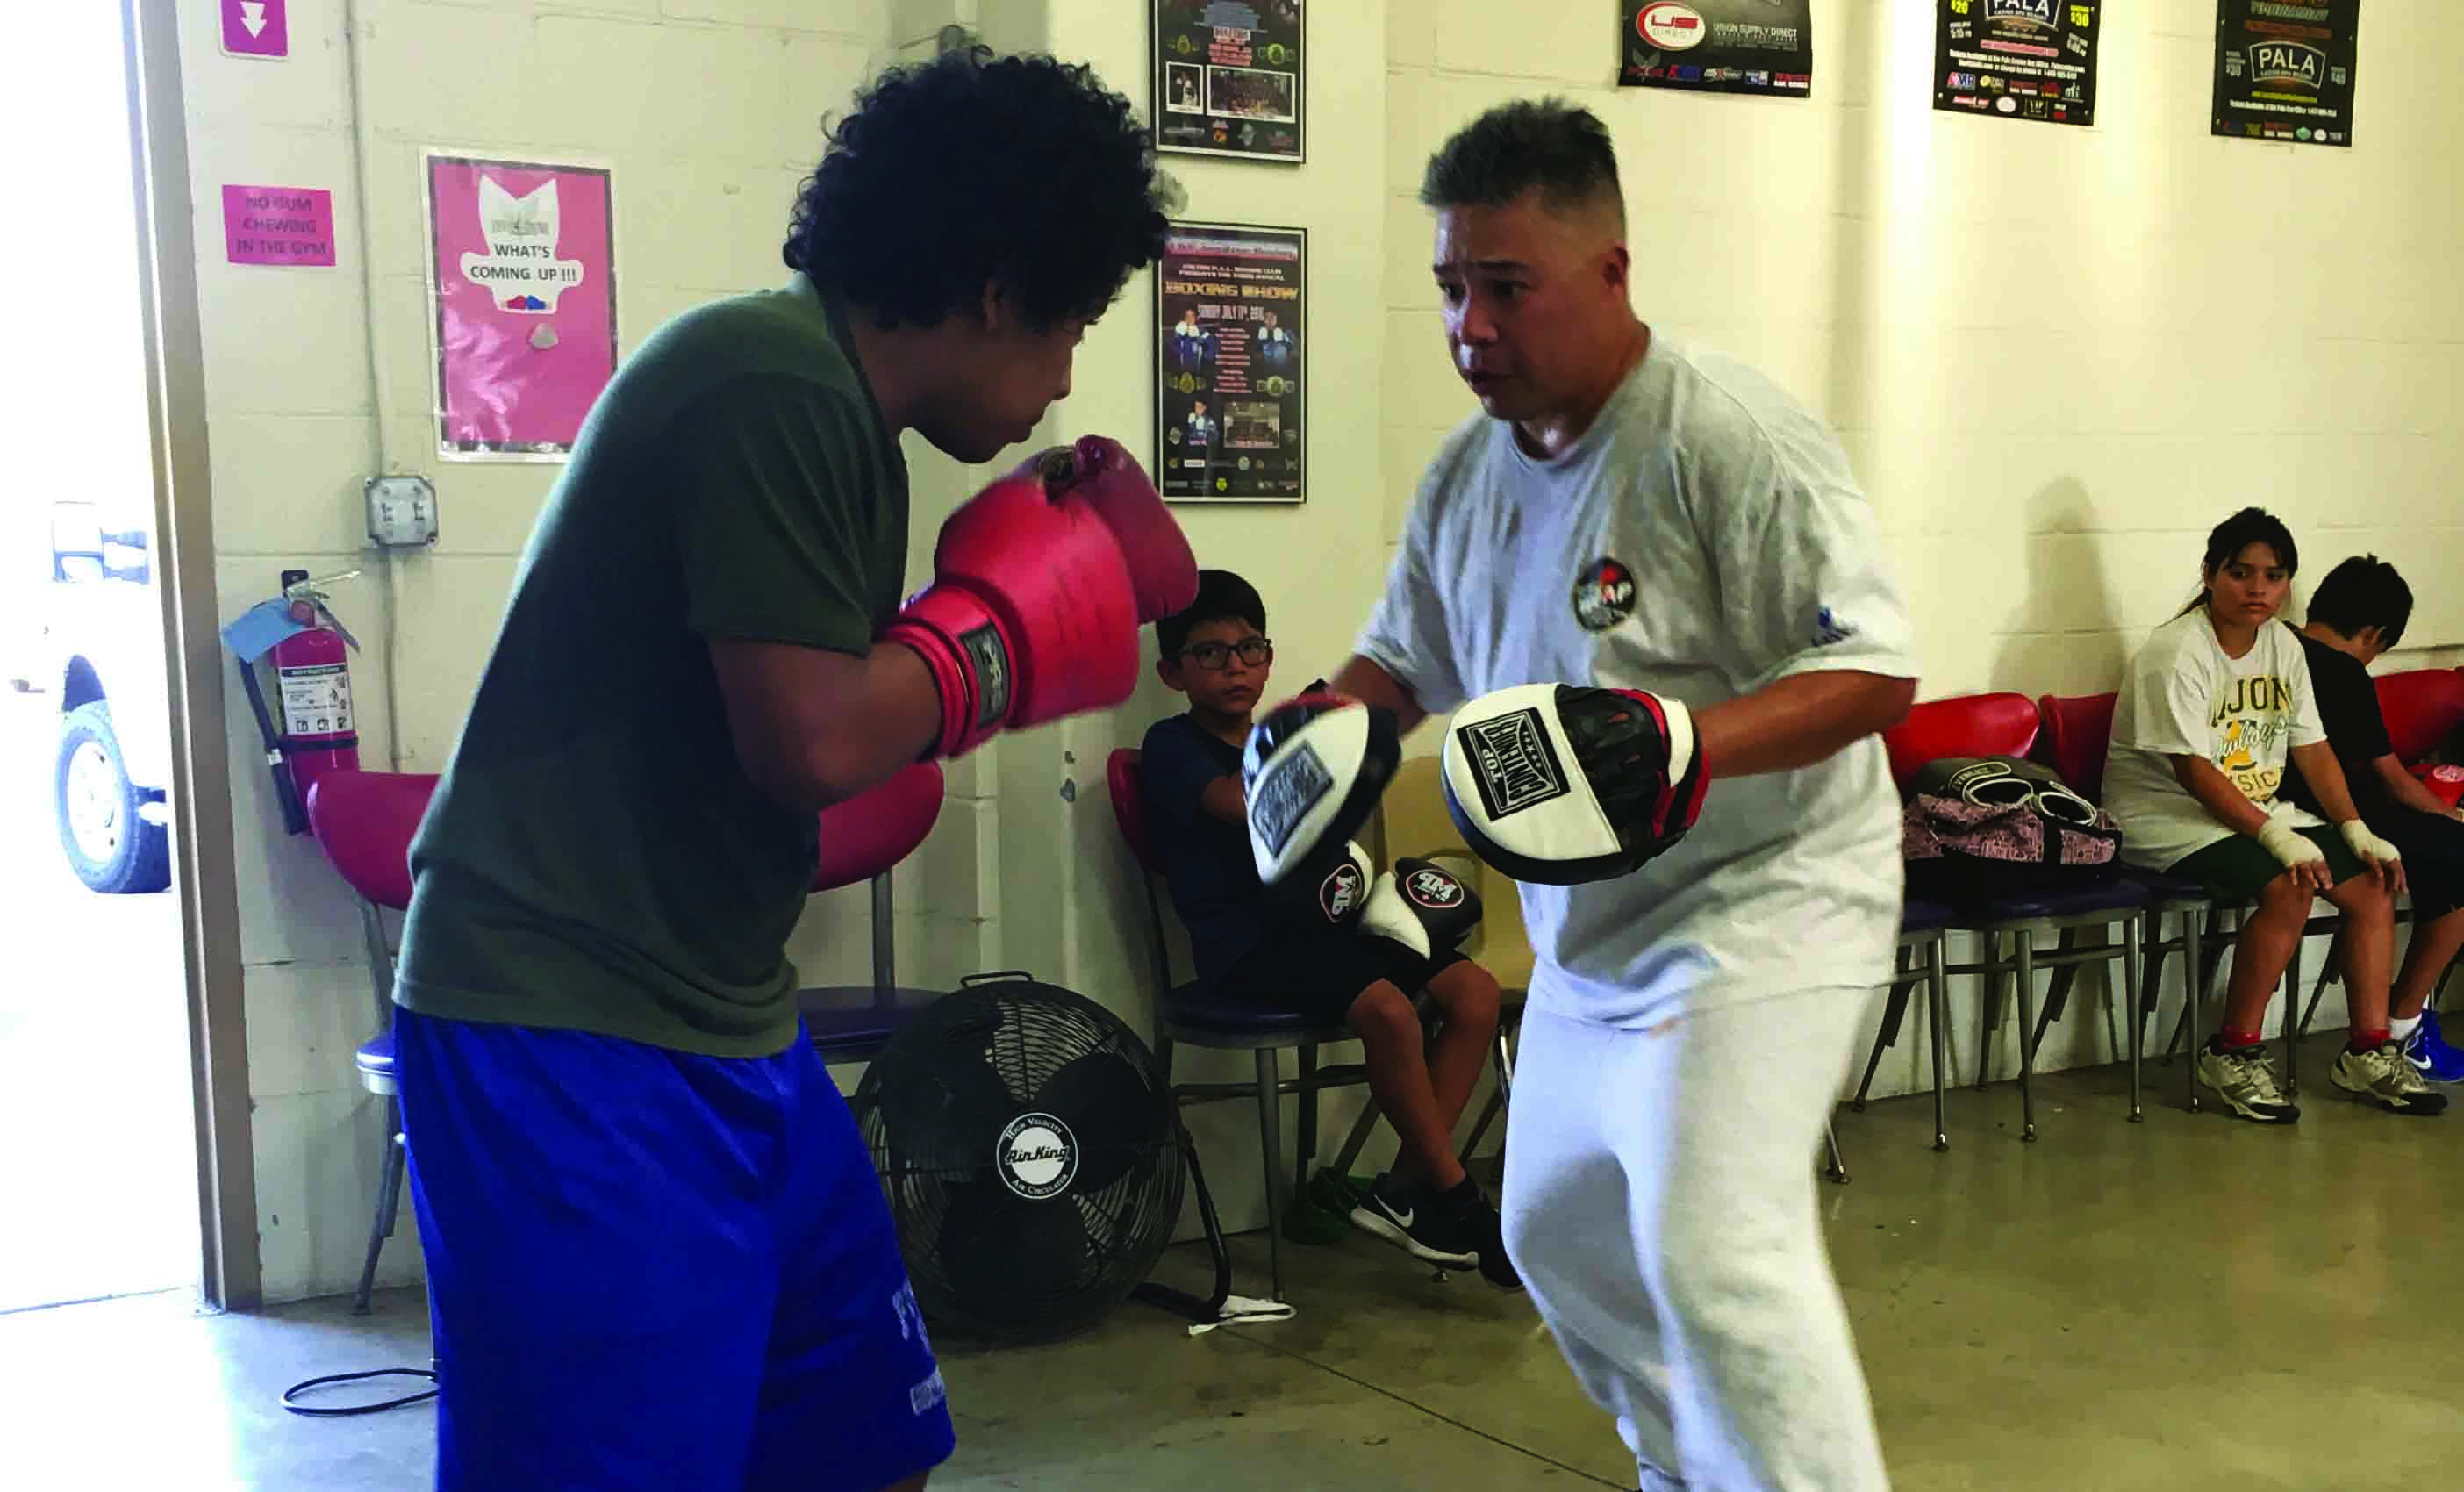 Boxing gym provides officers space to train and mentor